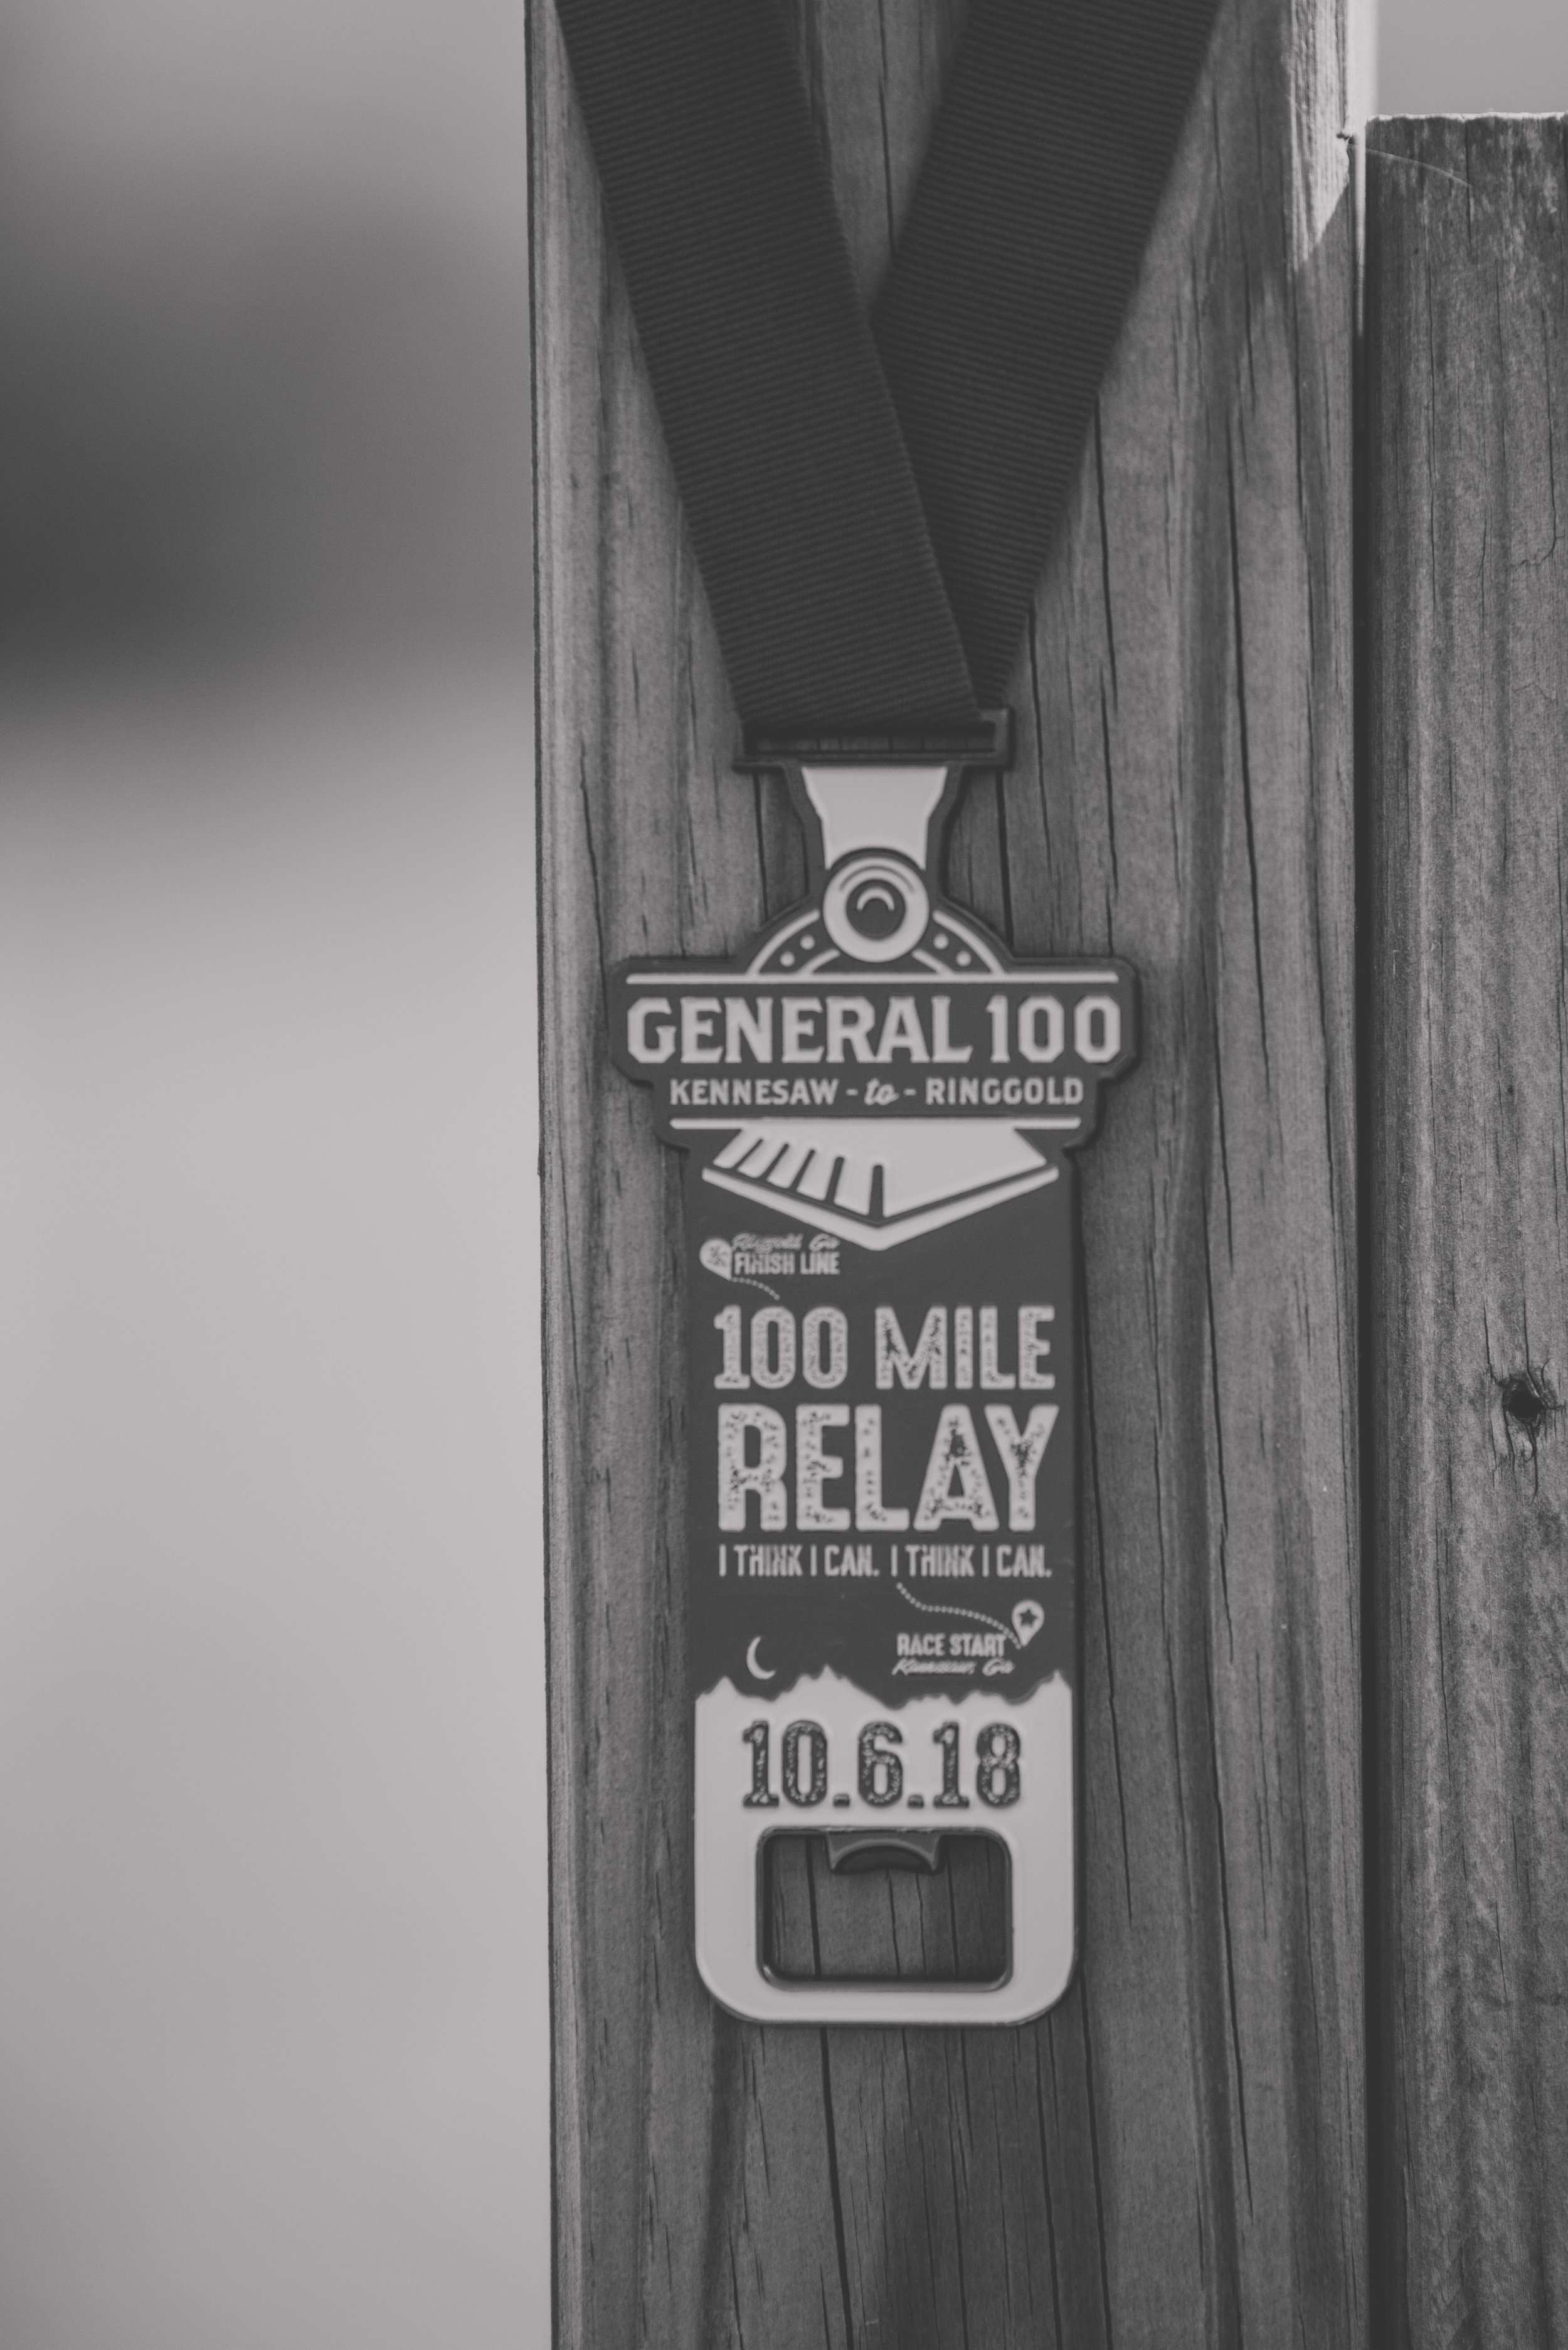 "About the Relay - The General 100™ is a 4- or 7- member team running relay covering 100 miles of beautiful, challenging terrain beginning in Kennesaw, Georgia. The course primarily follows scenic country roads winding its way through North Georgia's historic sites to the finish line in Ringgold, Georgia.The race route faithfully parallels the railroad from Kennesaw to Ringgold following the route of the famous ""Great Locomotive Chase."" On April 12th, 1862, Union soldiers stole ""the General"" locomotive and several train cars in Big Shanty (Kennesaw) and headed north for Chattanooga. They were quickly pursued with a separate locomotive, by hand-car and finally on foot by the General's resourceful conductor.Only 1 team member will take the road at a time. While this individual is completing his or her leg of the relay, the remaining team members will travel by vehicle to the next timing station/exchange point.Sign Up 